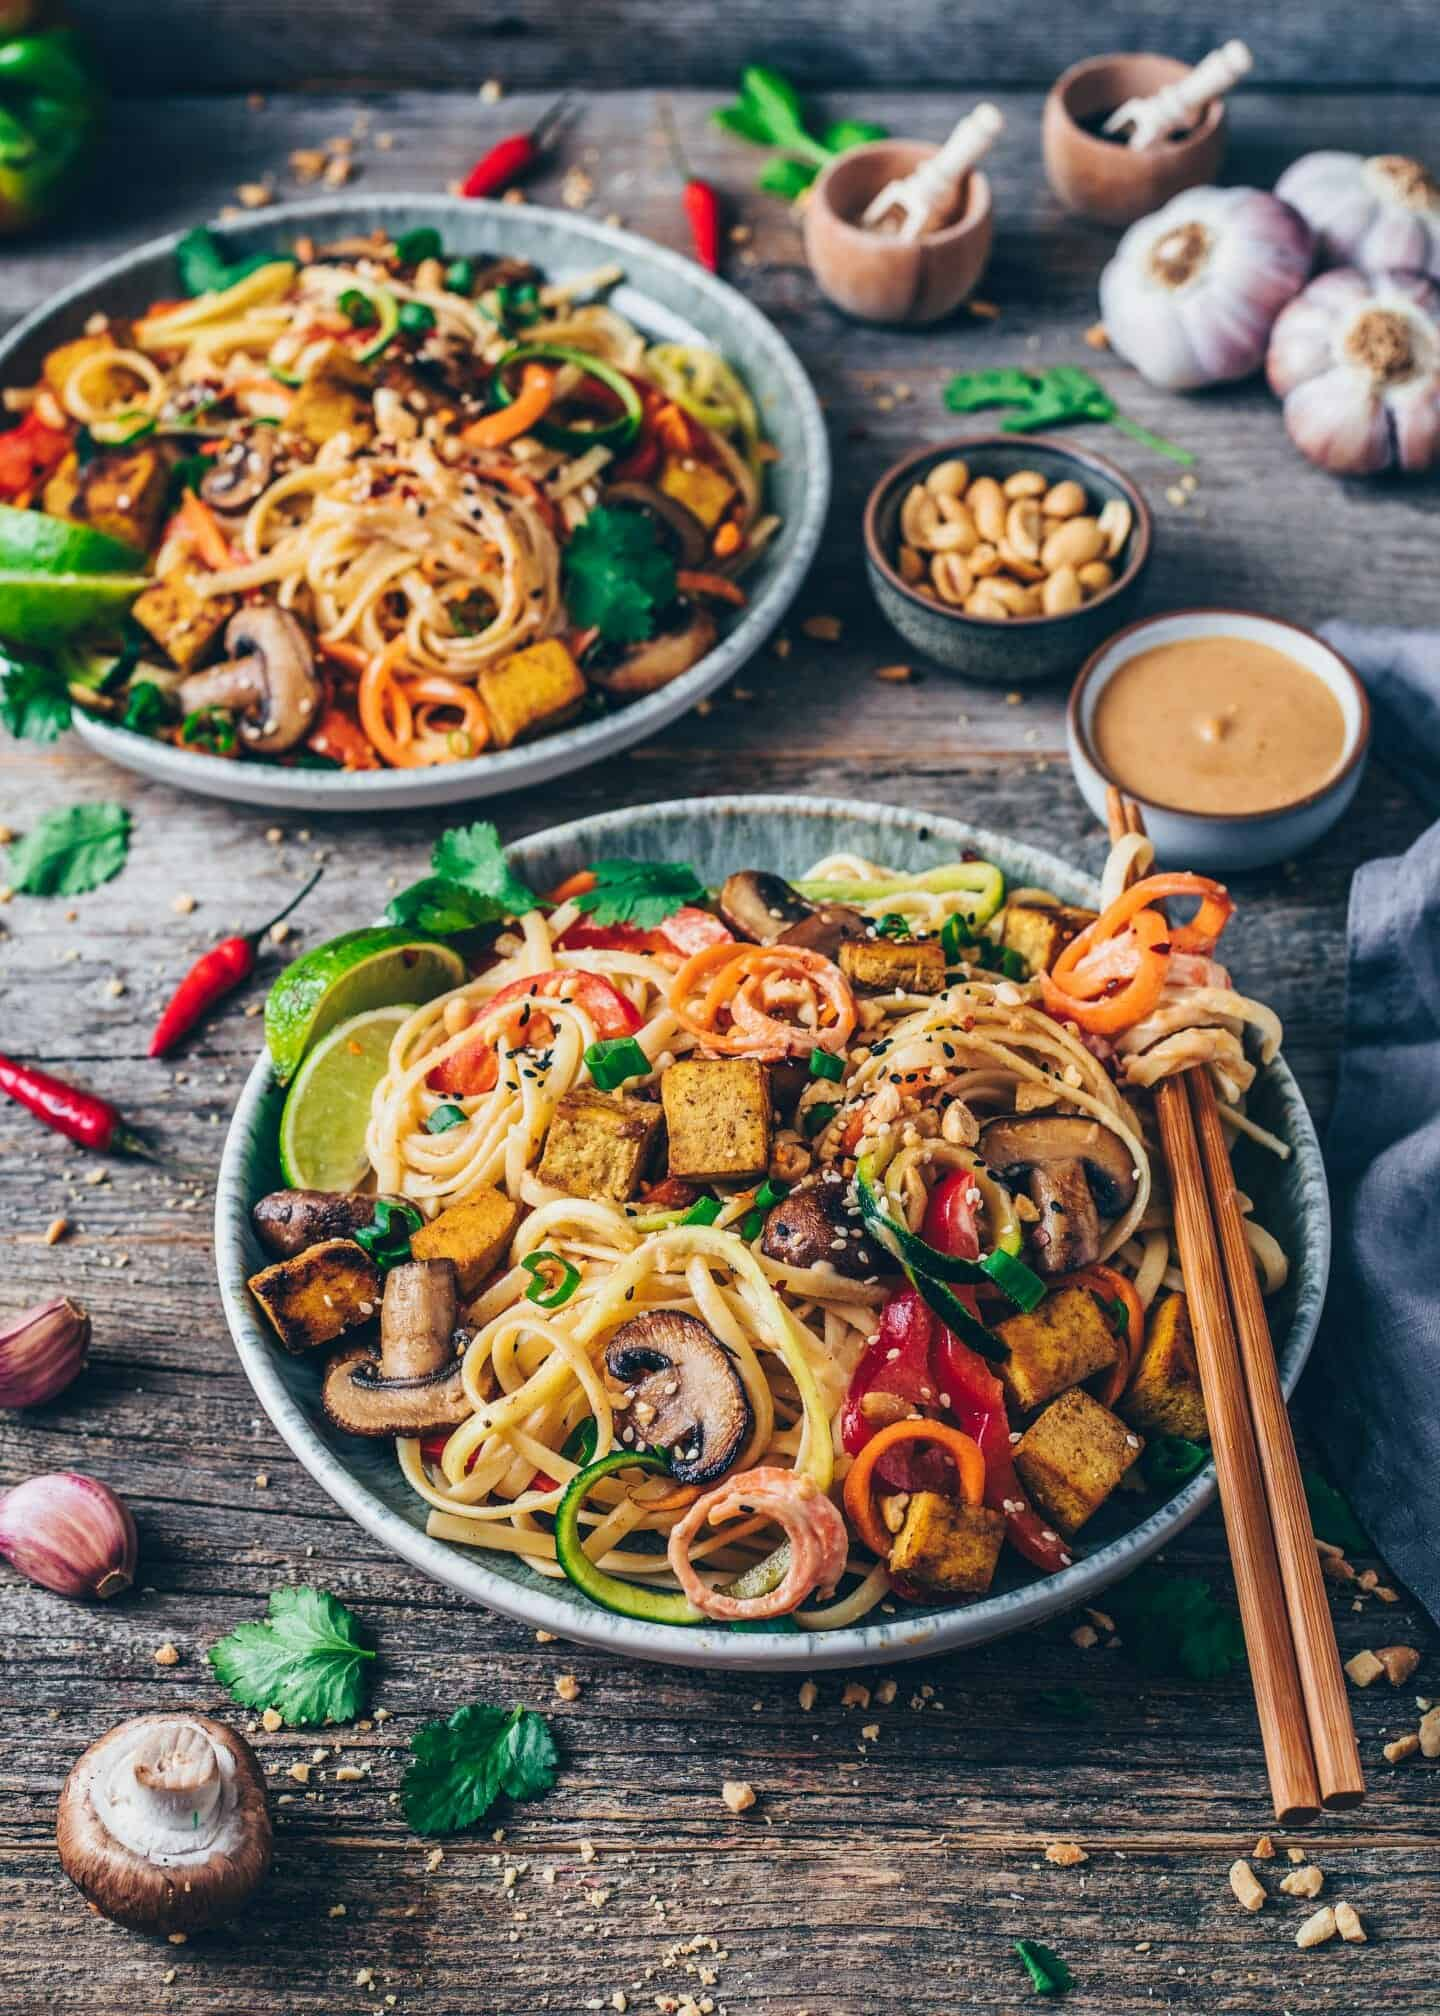 Vegan Pad Thai with crispy tofu, vegetable noodles, creamy peanut sauce. Quick and easy Recipe, healthy, delicious, gluten-free. Carrot noodles, Zucchini Noodles, mushrooms.